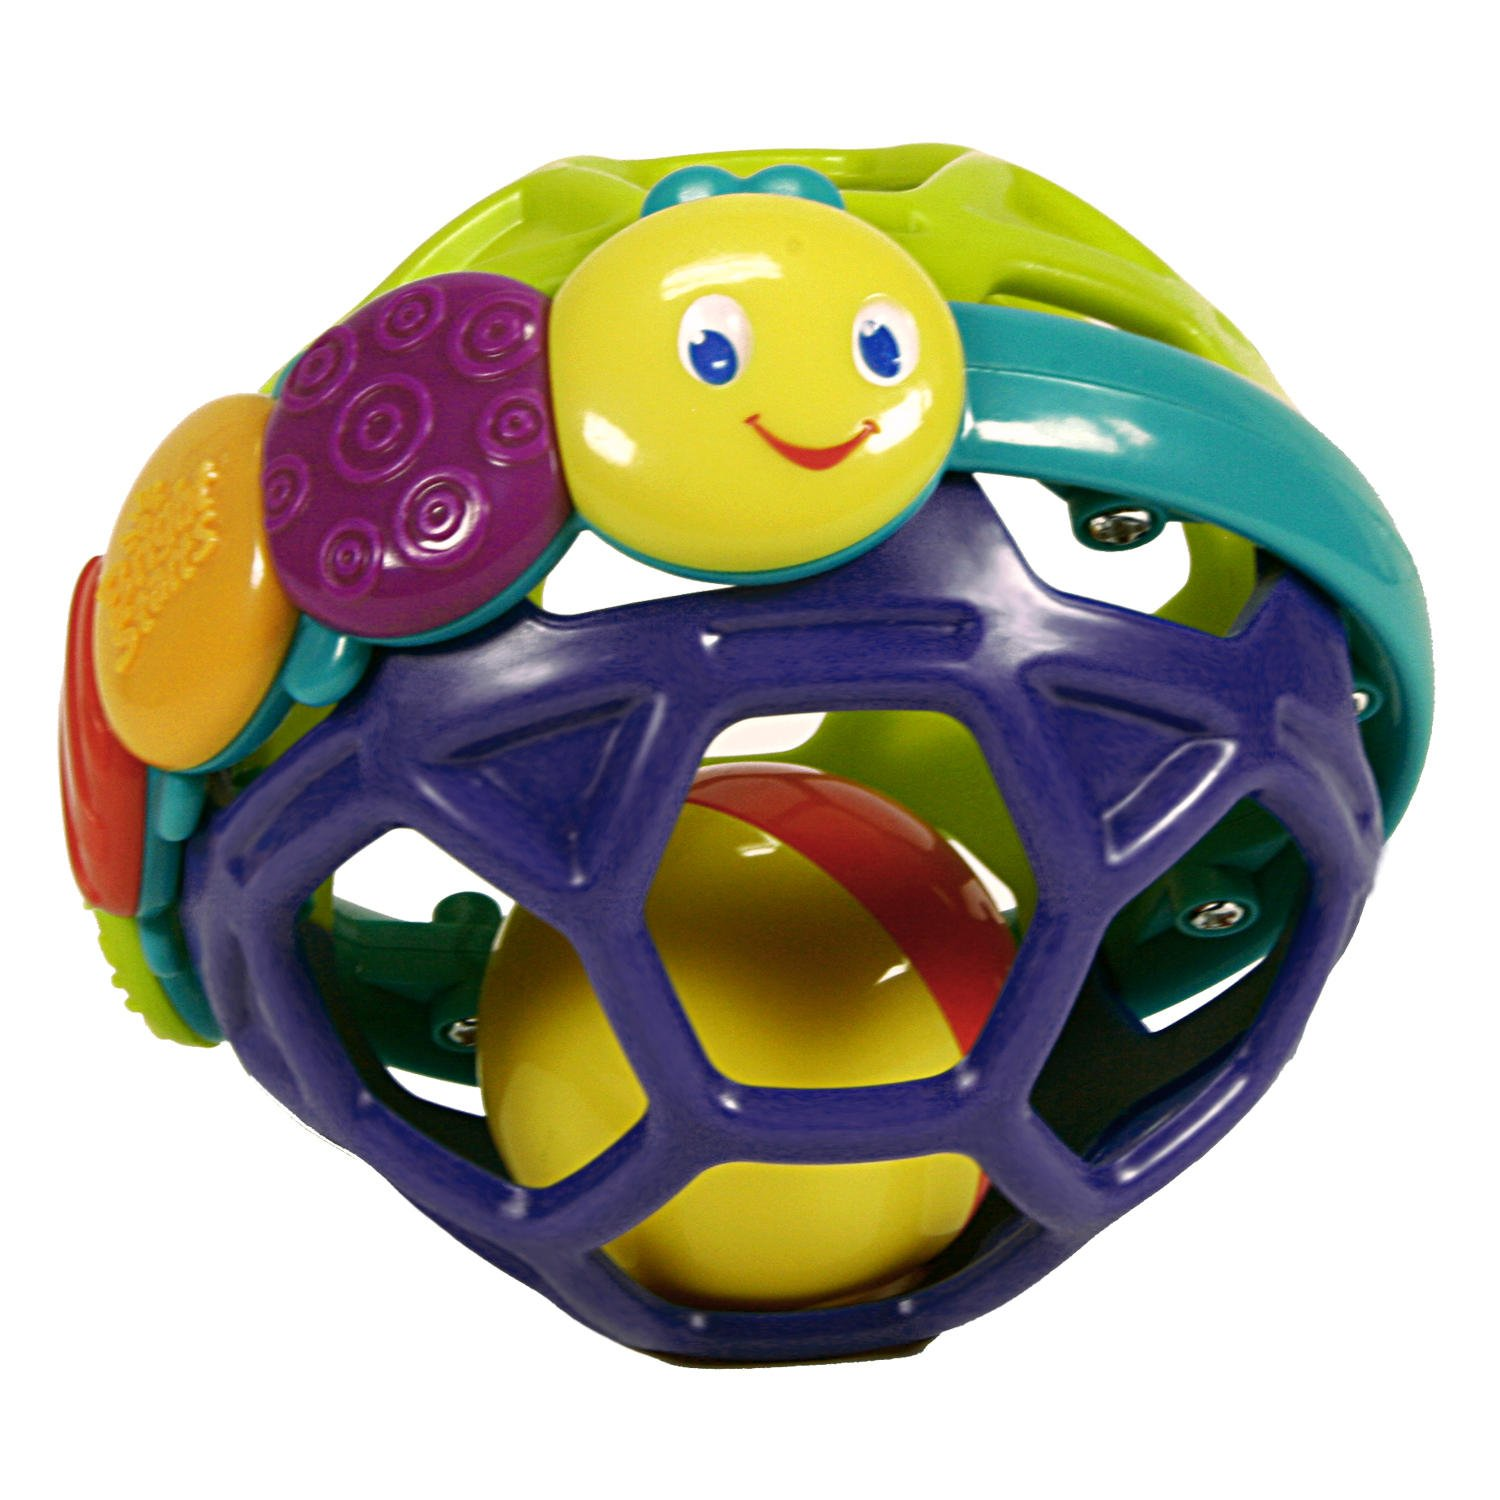 Kids II Bright Starts Flexi Ball Amazon Baby